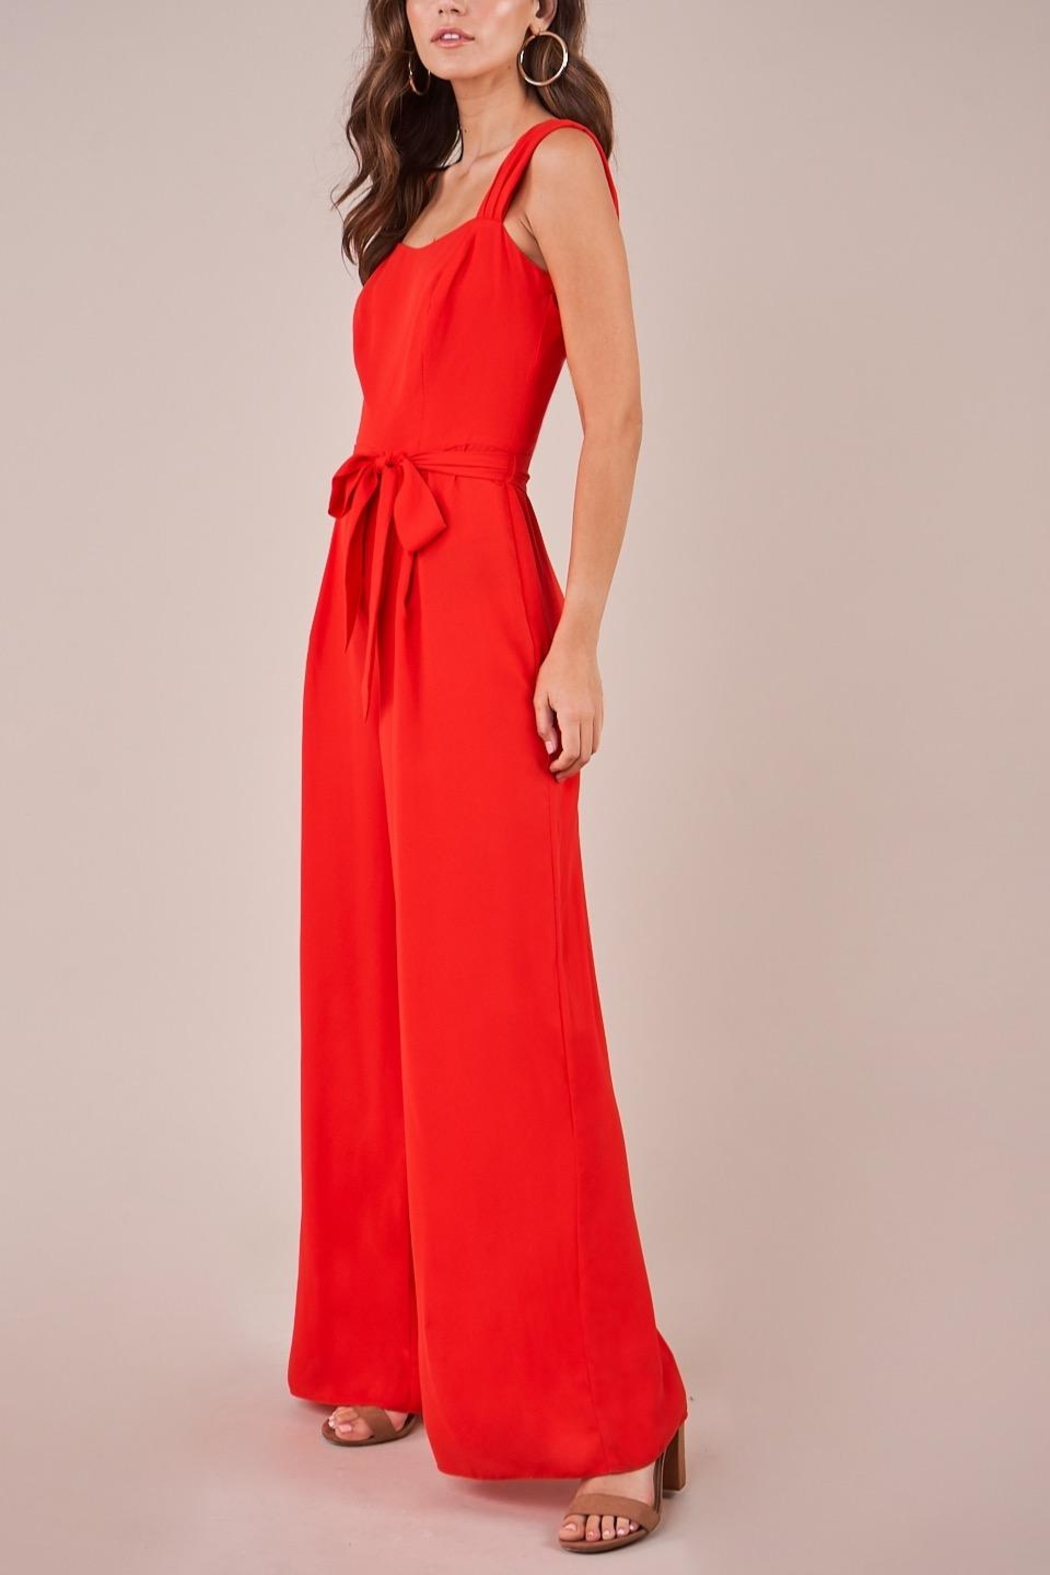 Sugarlips Red Wide-Leg Jumpsuit - Main Image